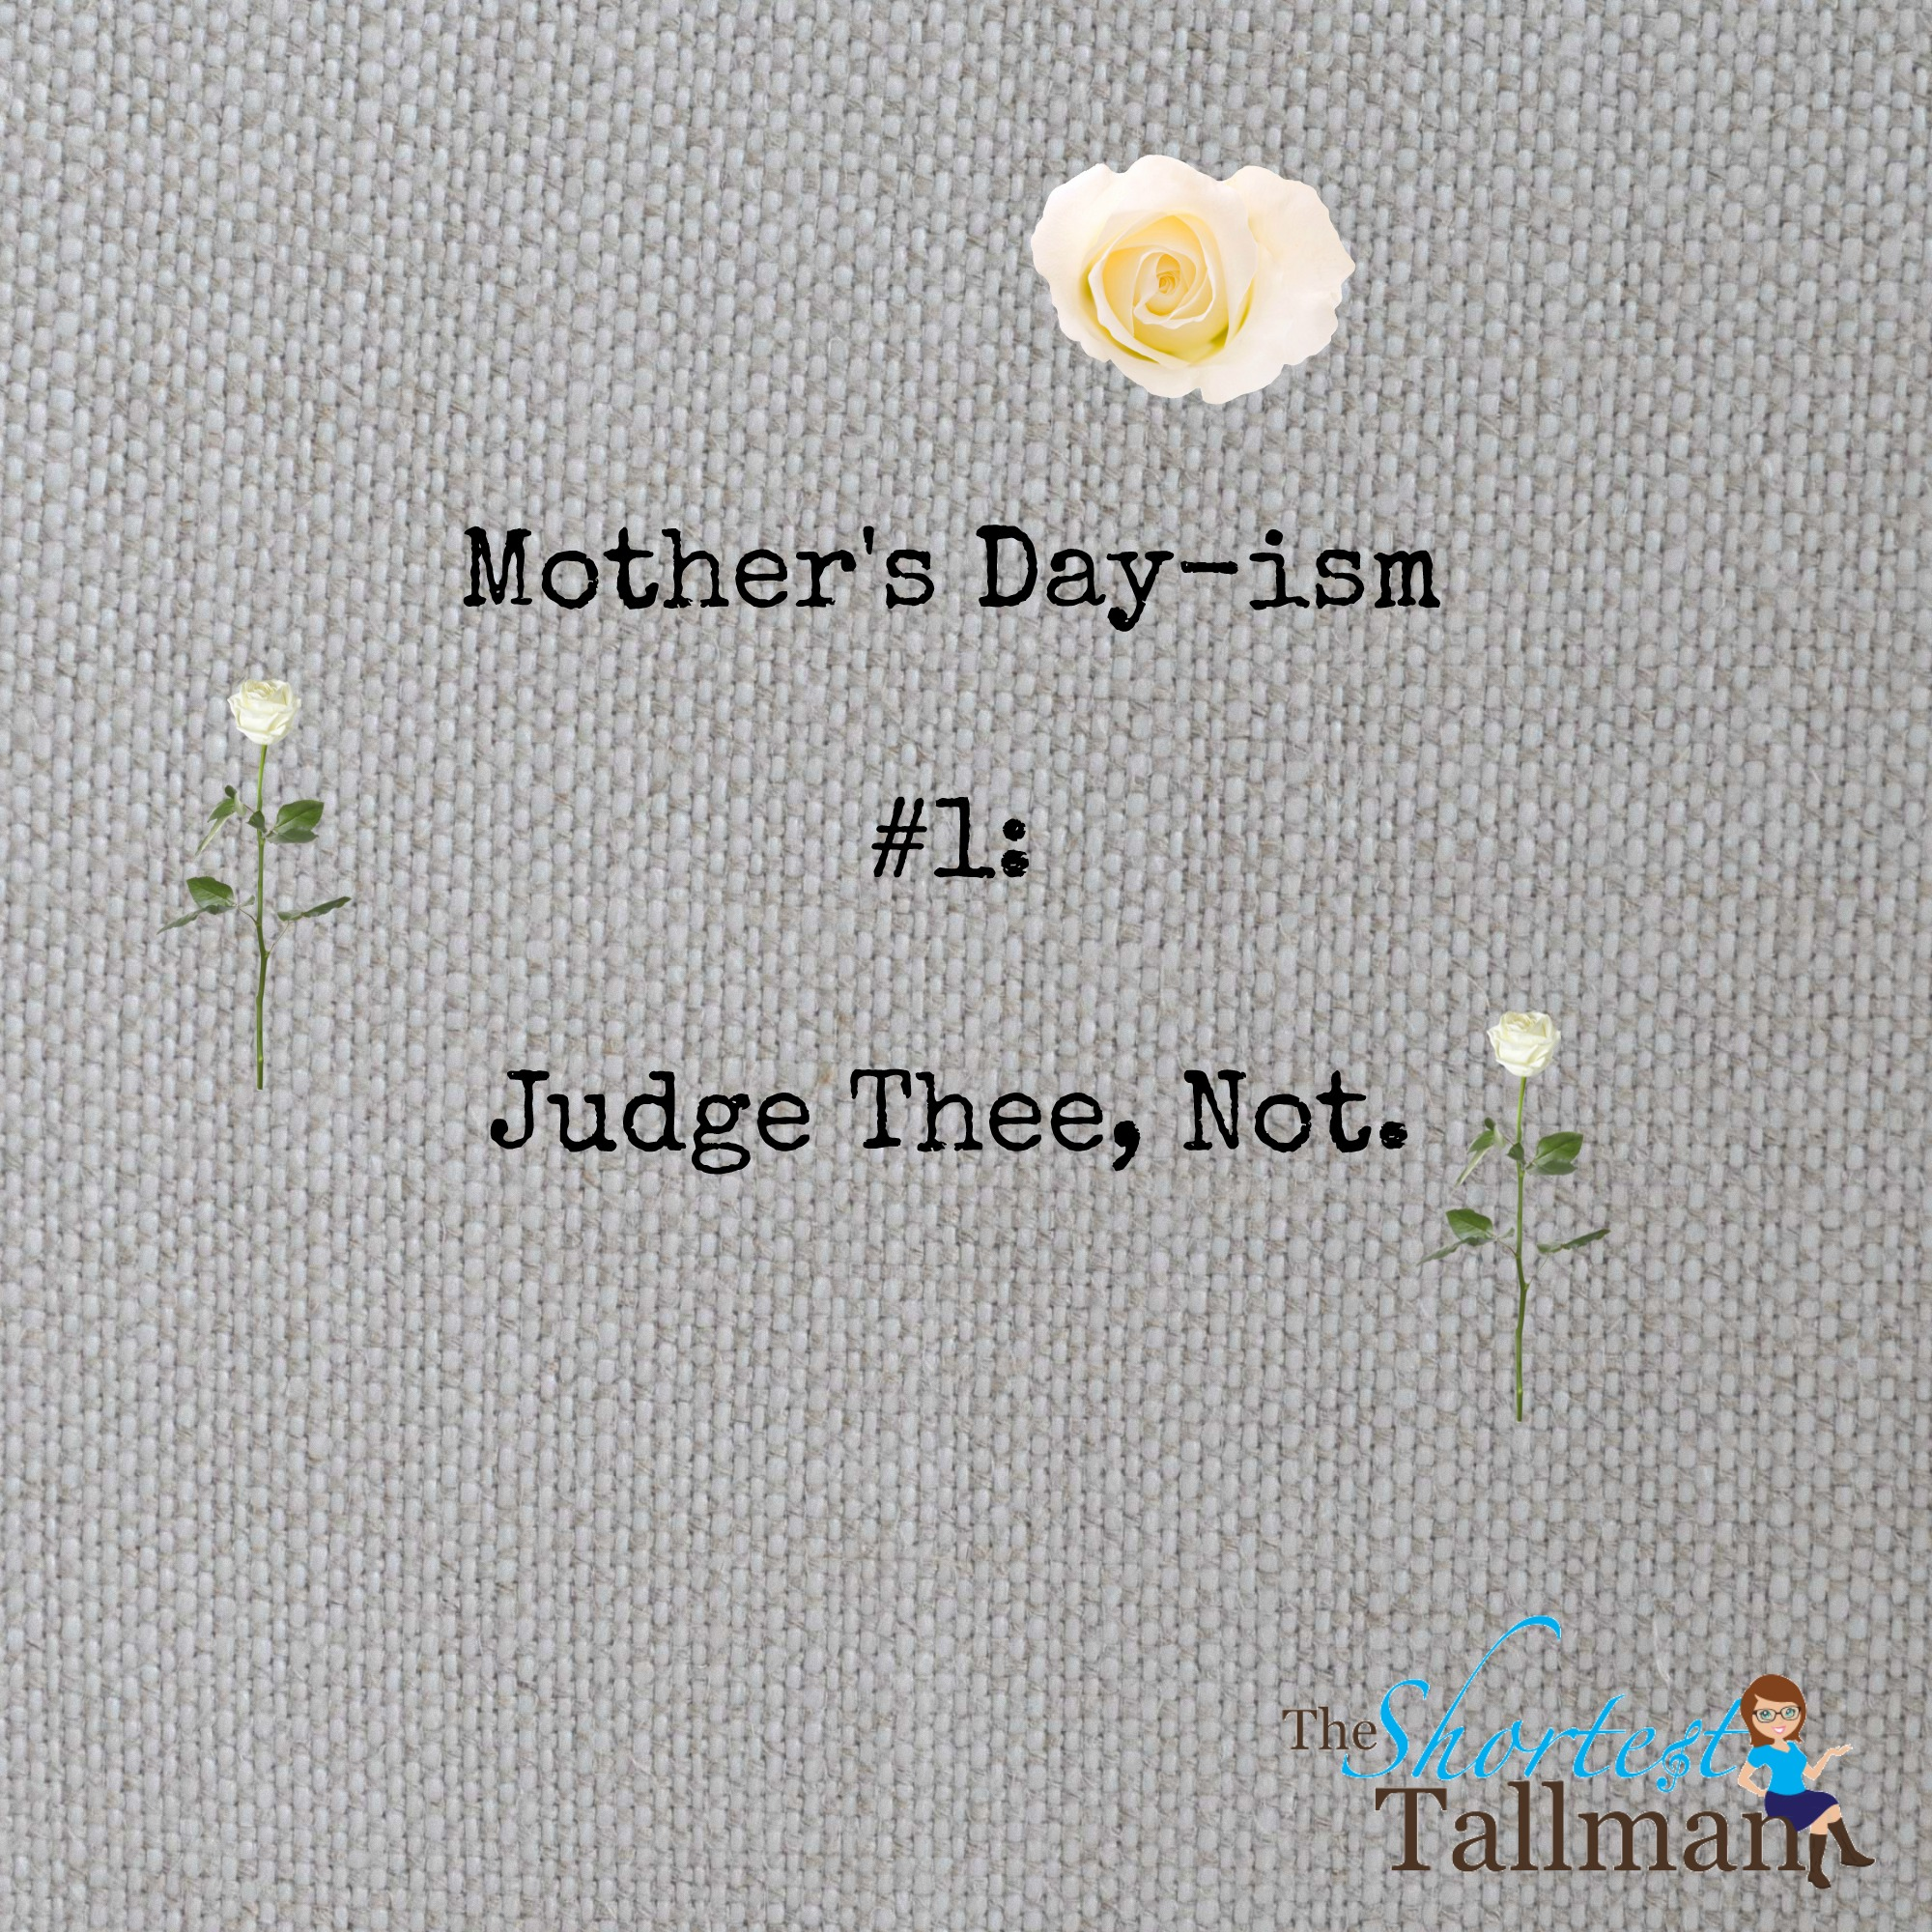 Happy Mother's Day! www.theshortesttallman.com